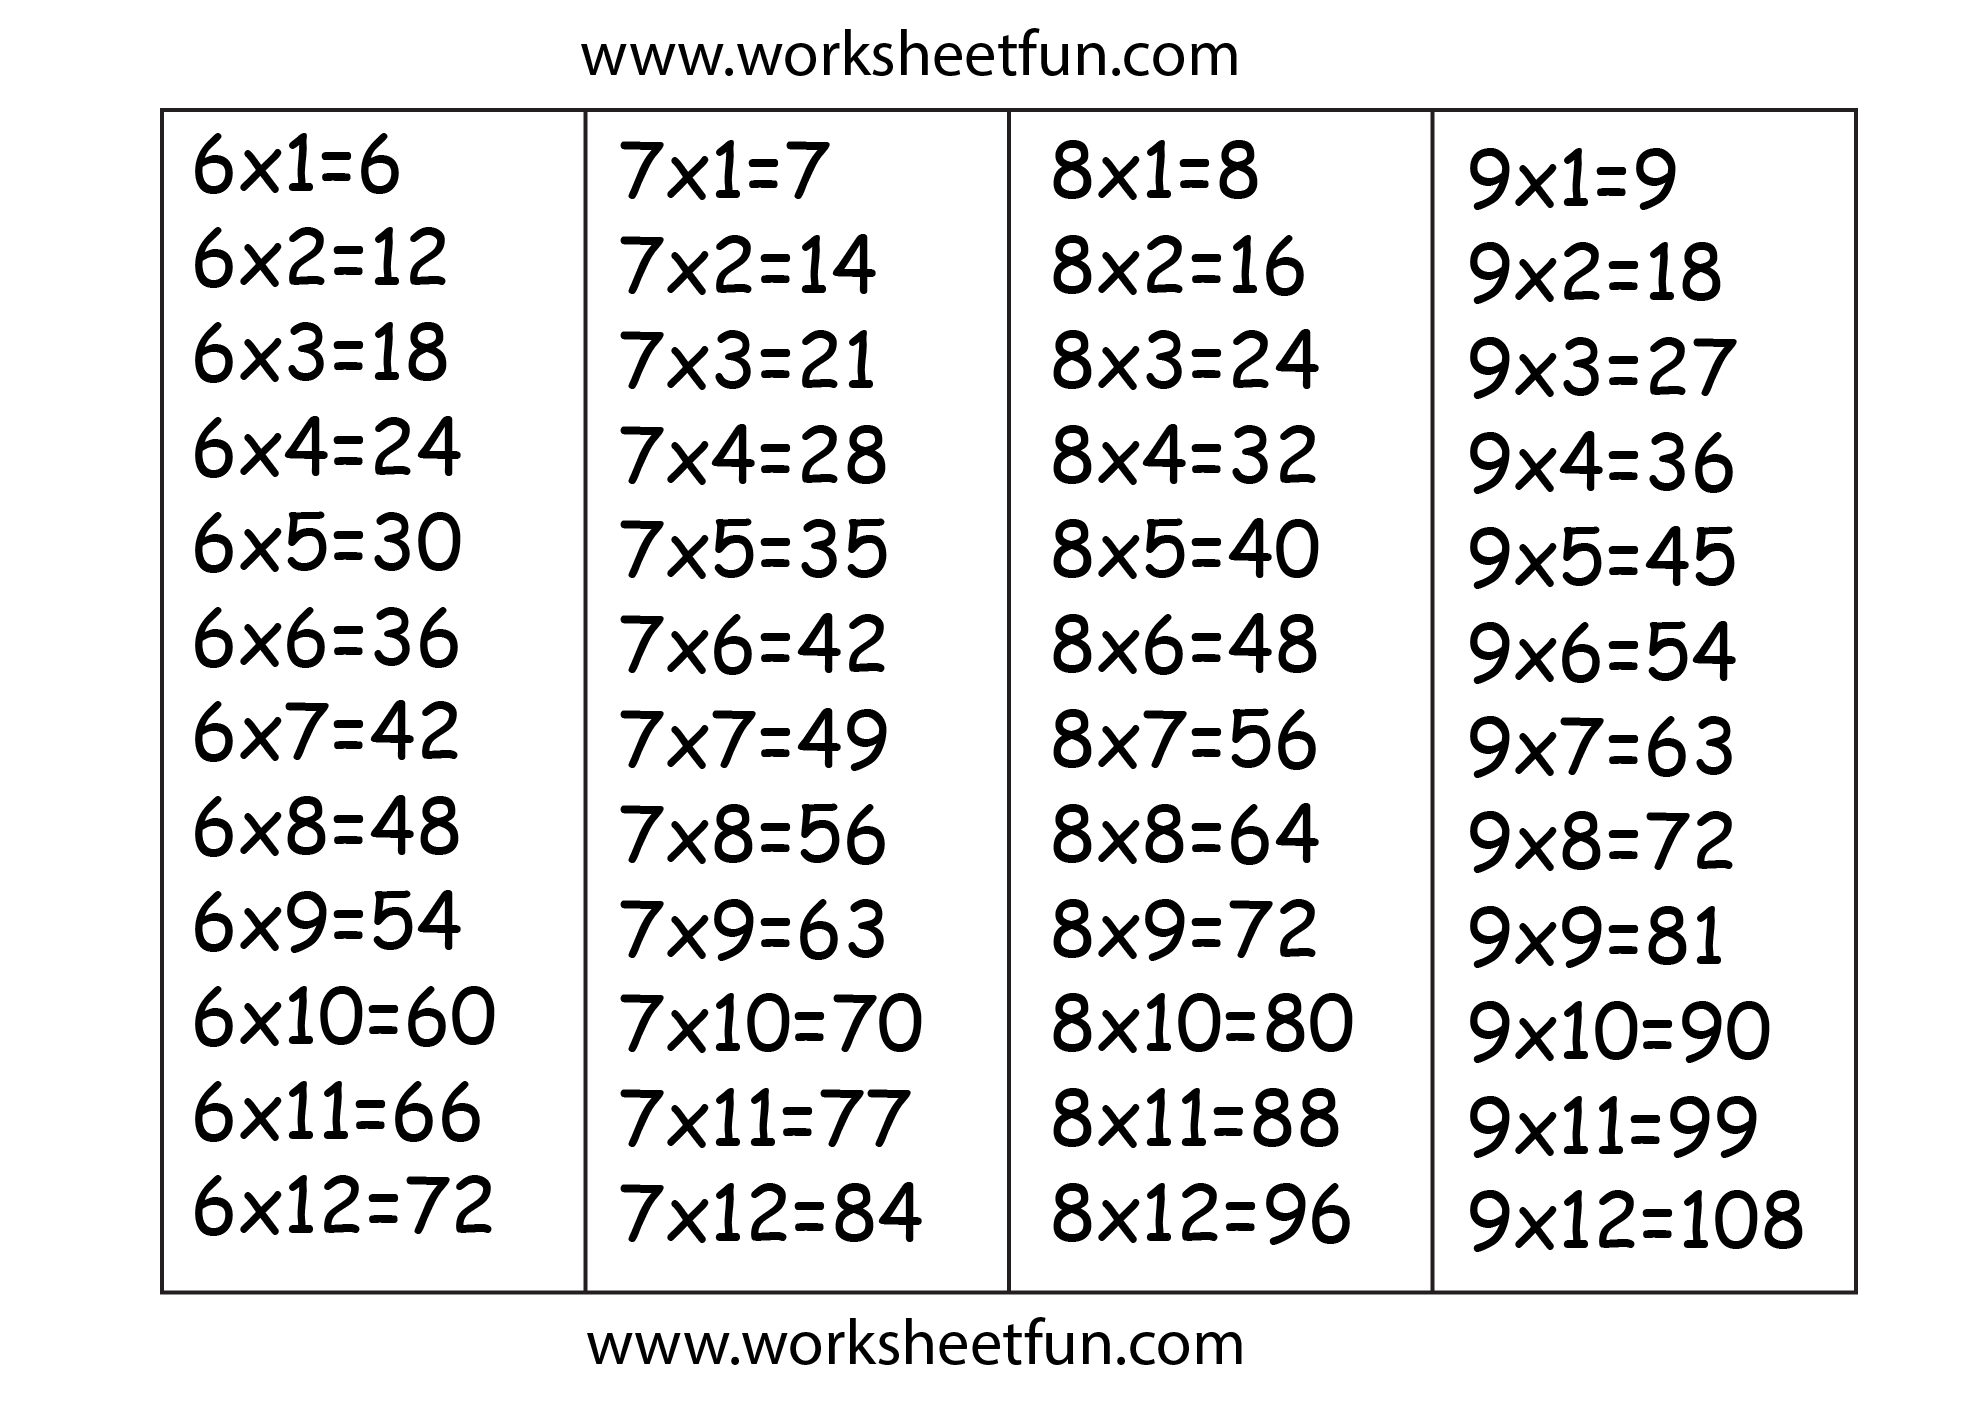 Times Table Chart – 6, 7, 8 & 9 / Free Printable Worksheets